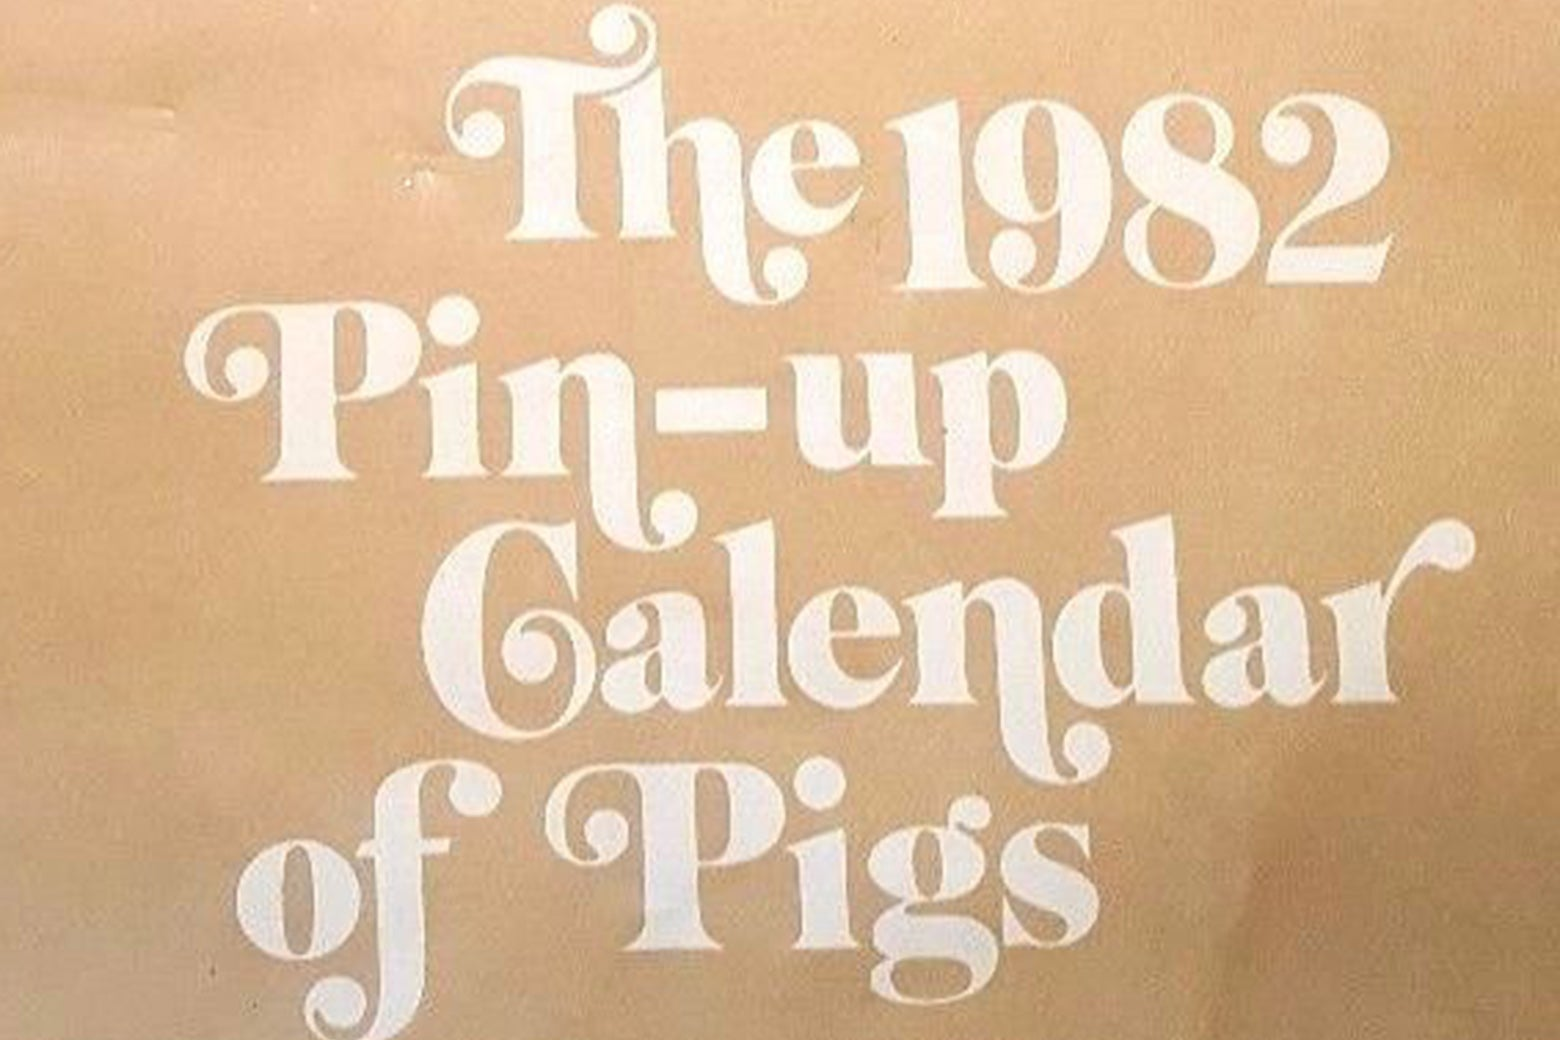 The cover of the Pin-Up Calendar of Pigs